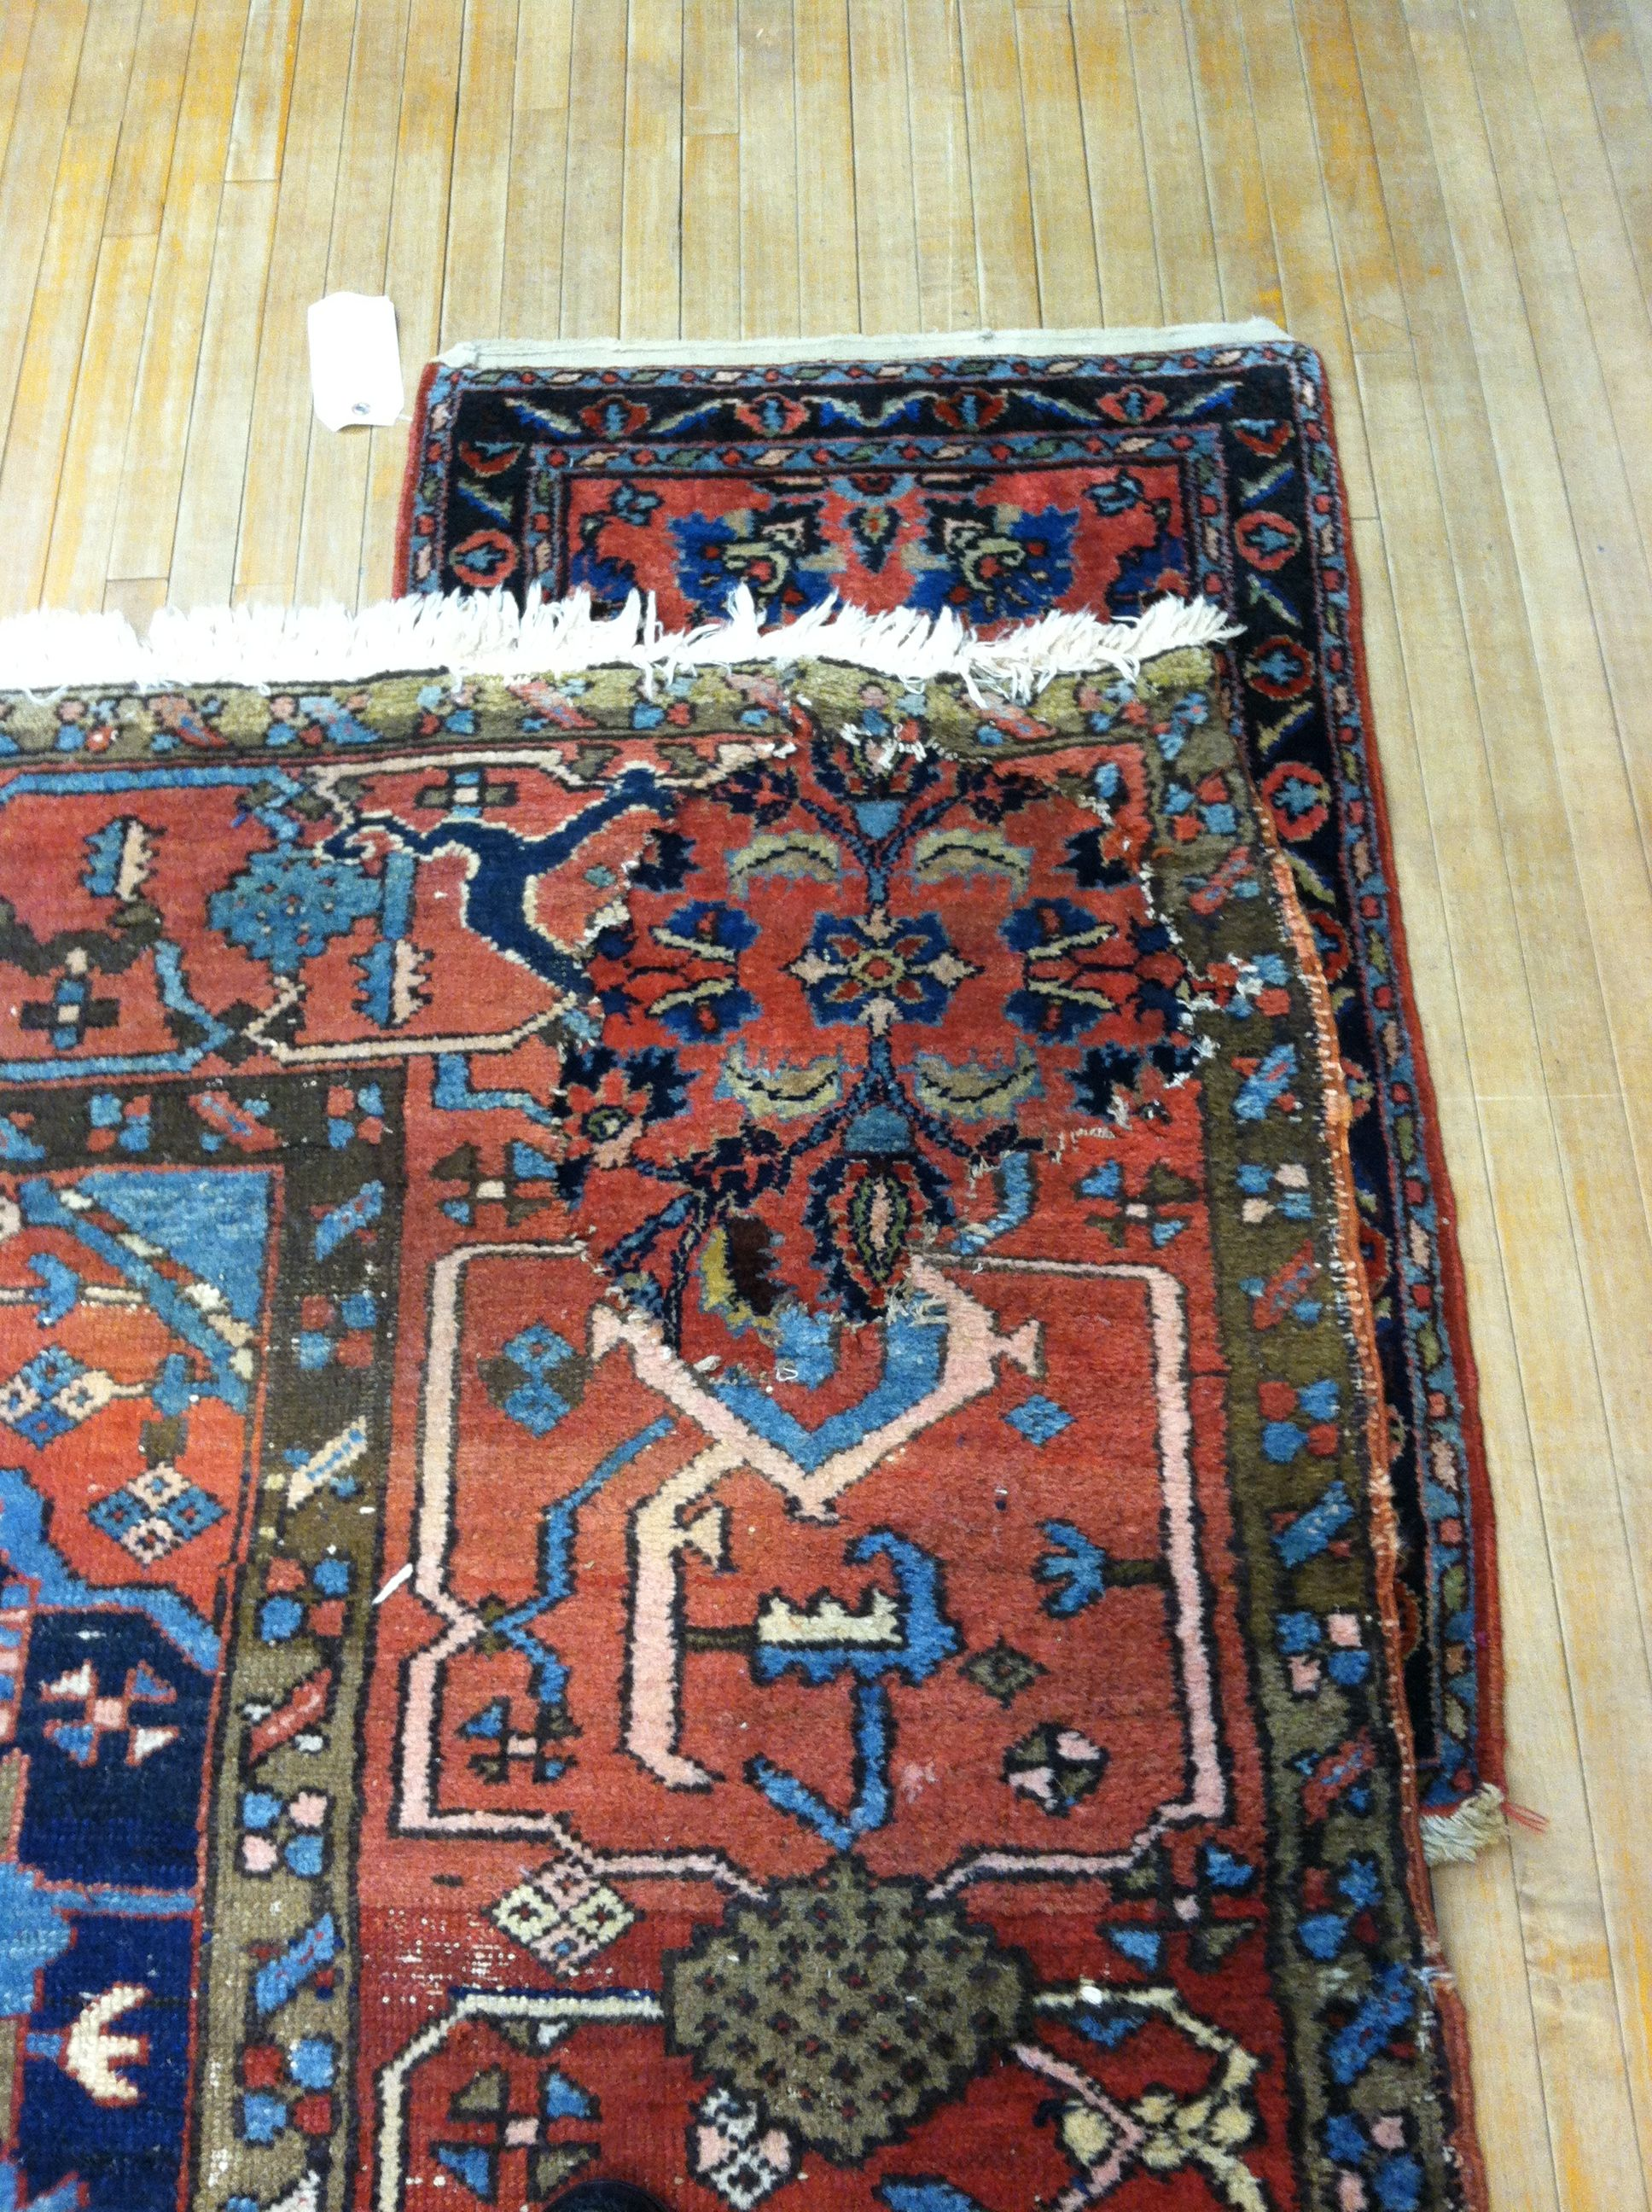 A patch is found to fill the hole caused from a potted plant. In this case another small rug will be used to fill the hole. #rugpatch #rugrepair #herizpatchedcorner #rugrestoration #persianrugrepair #rugreweaving #orientalrugrestoration